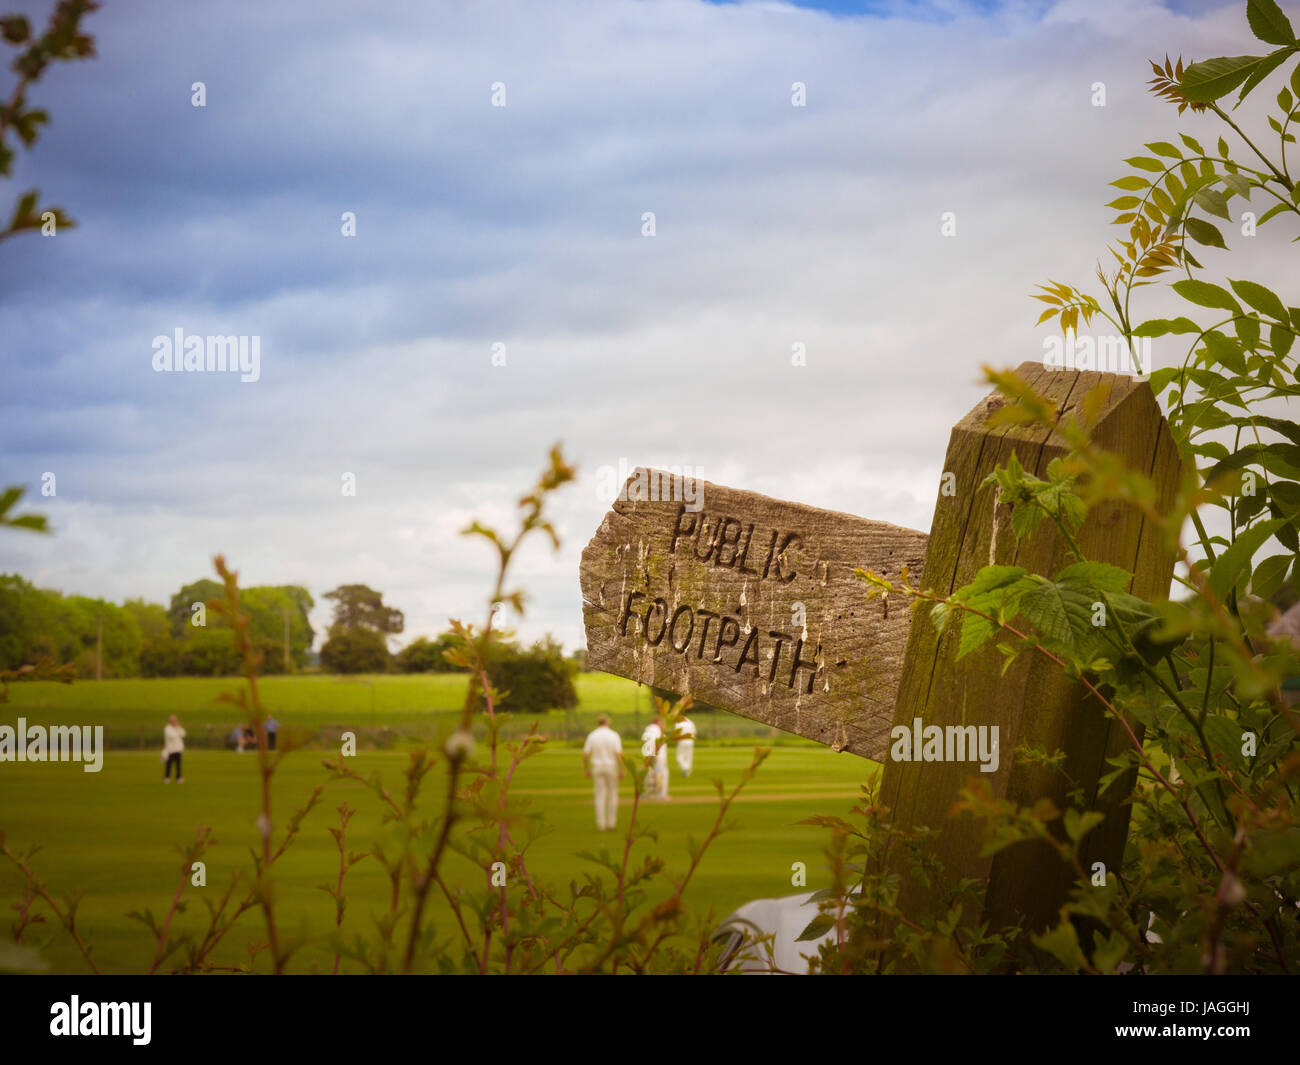 Public Footpath wooden sign with game of cricket being played in background - Stock Image